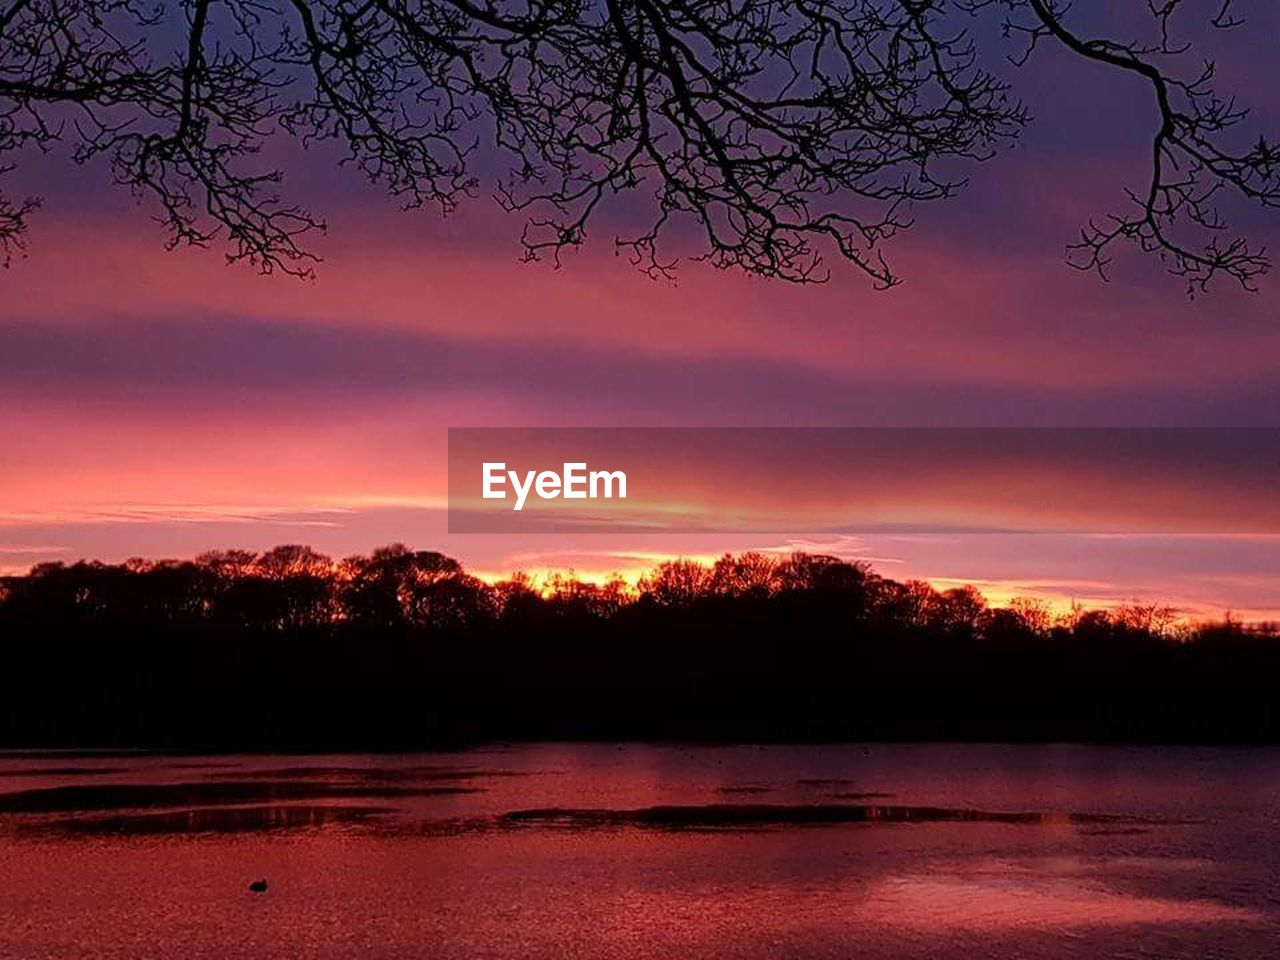 tree, sunset, beauty in nature, nature, scenics, lake, tranquility, no people, reflection, tranquil scene, outdoors, water, sky, day, astrology sign